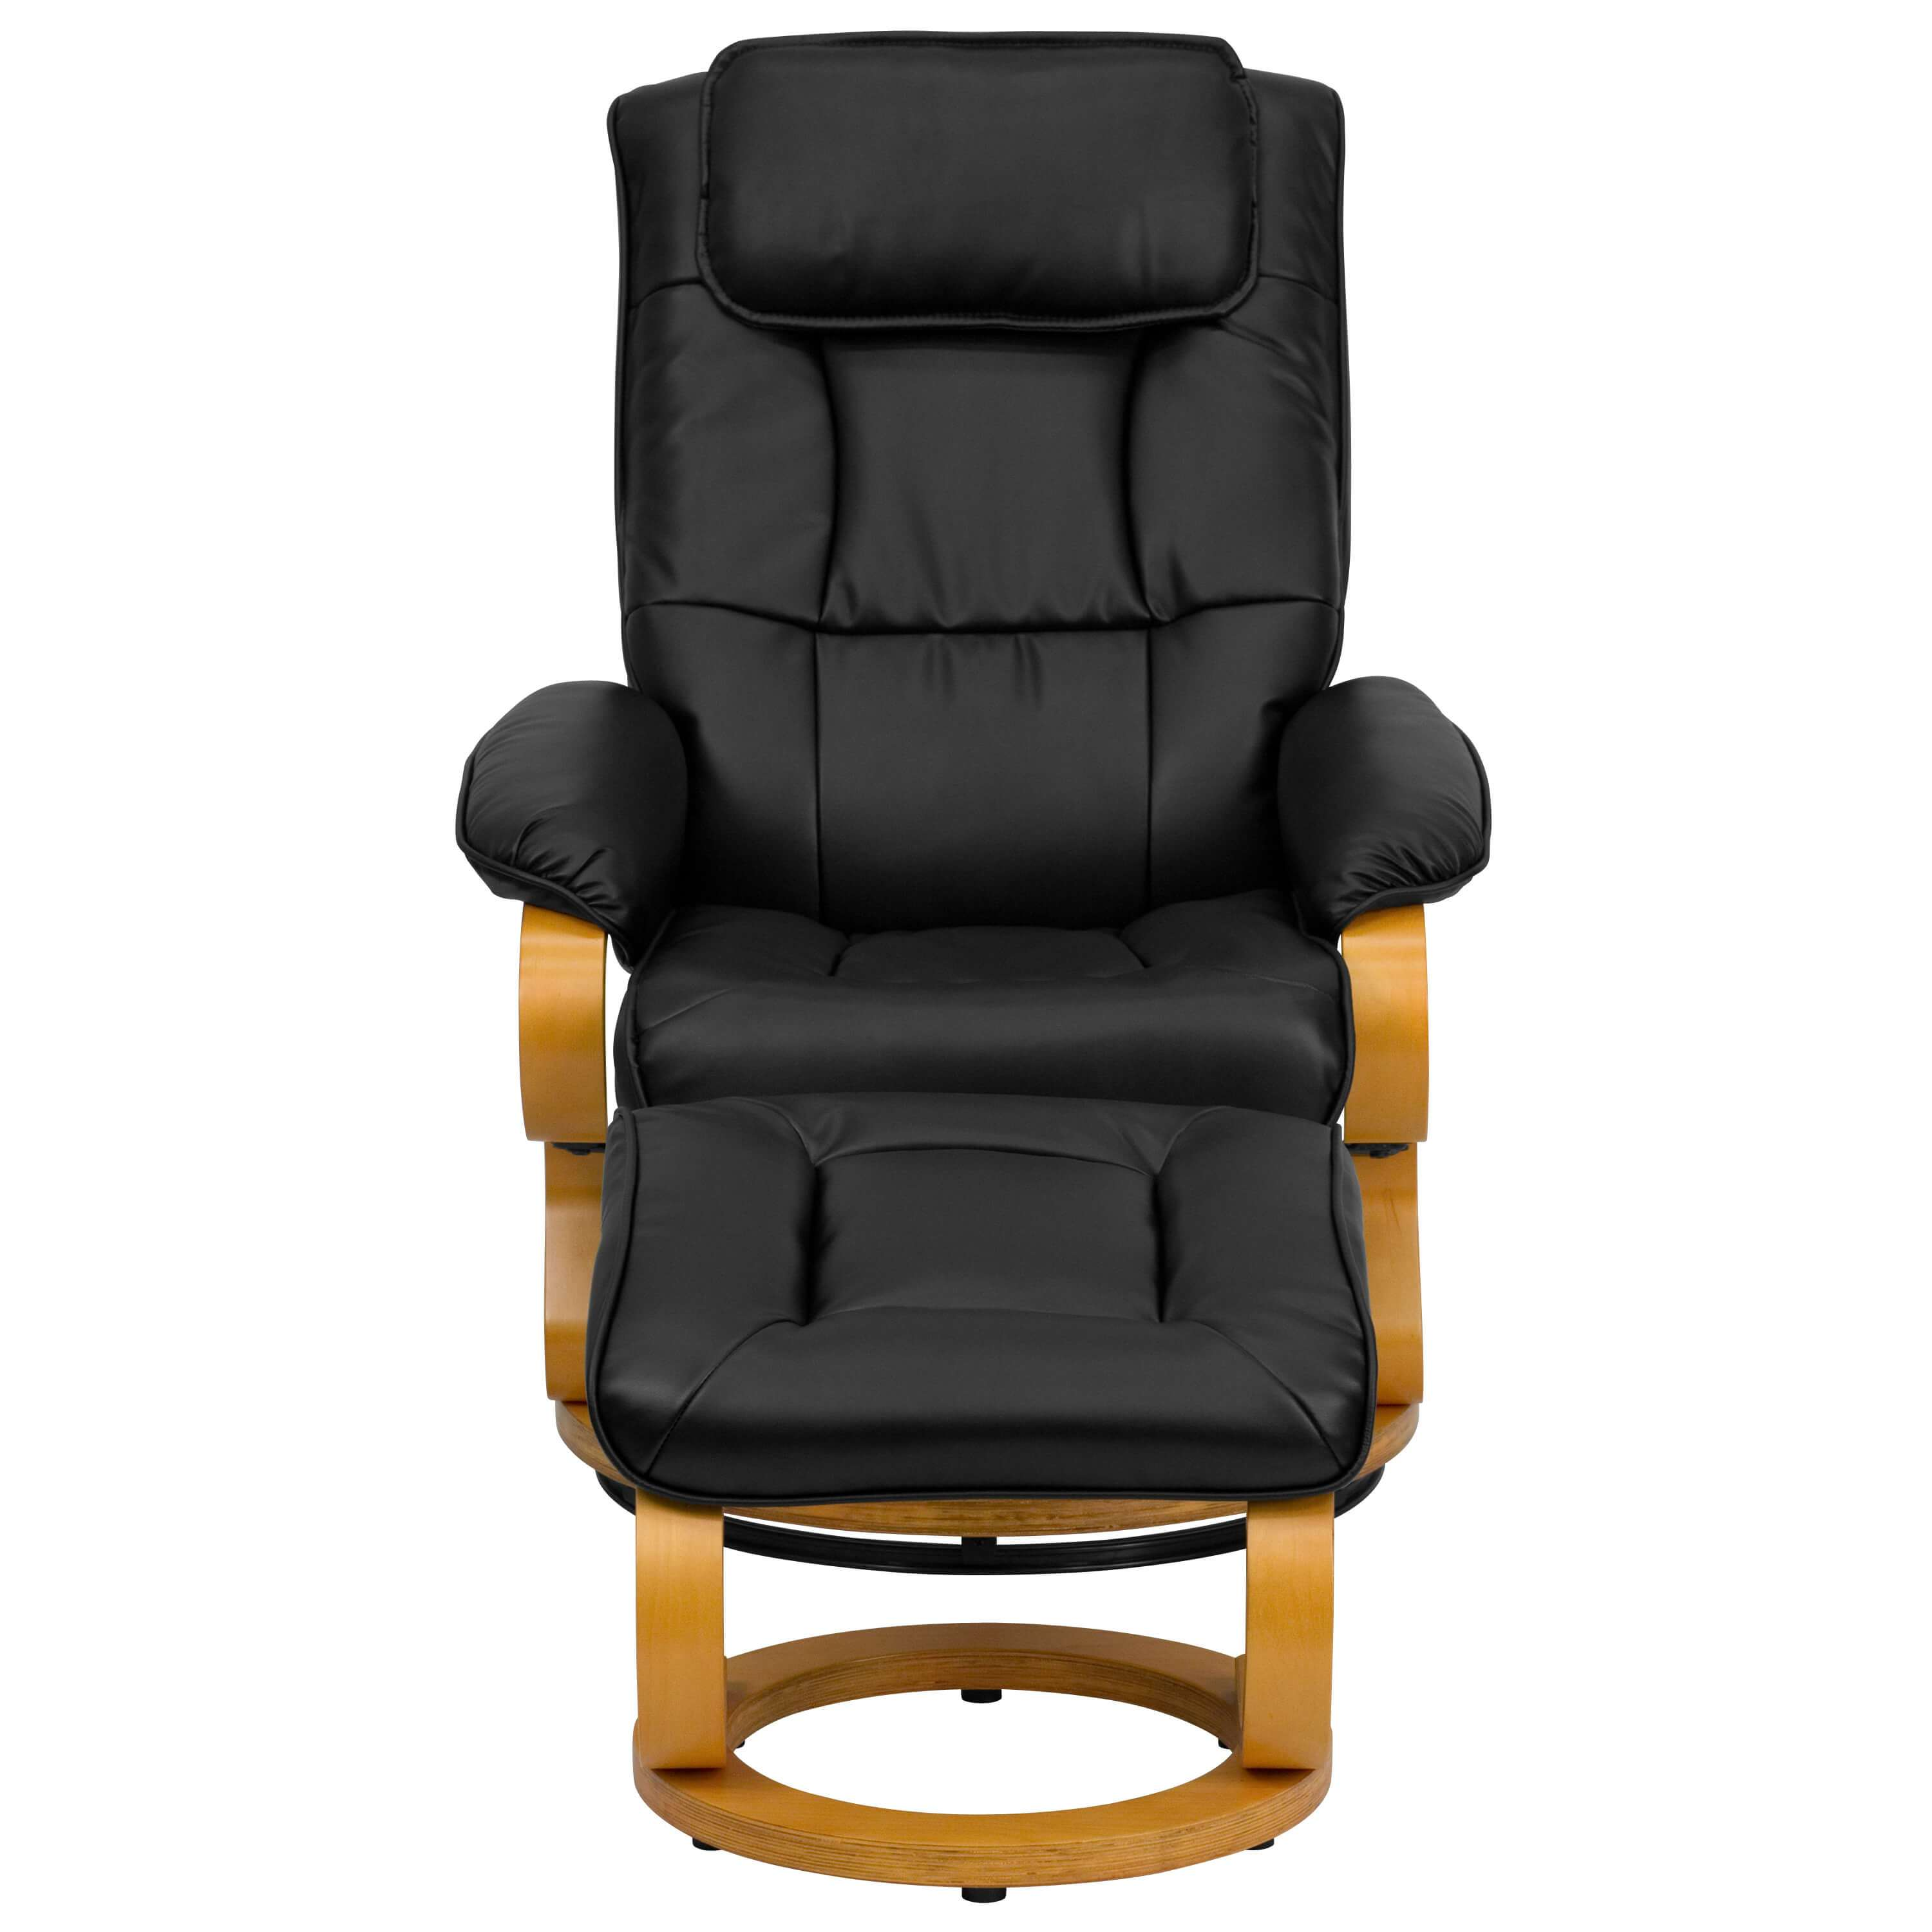 High back recliner chair front view